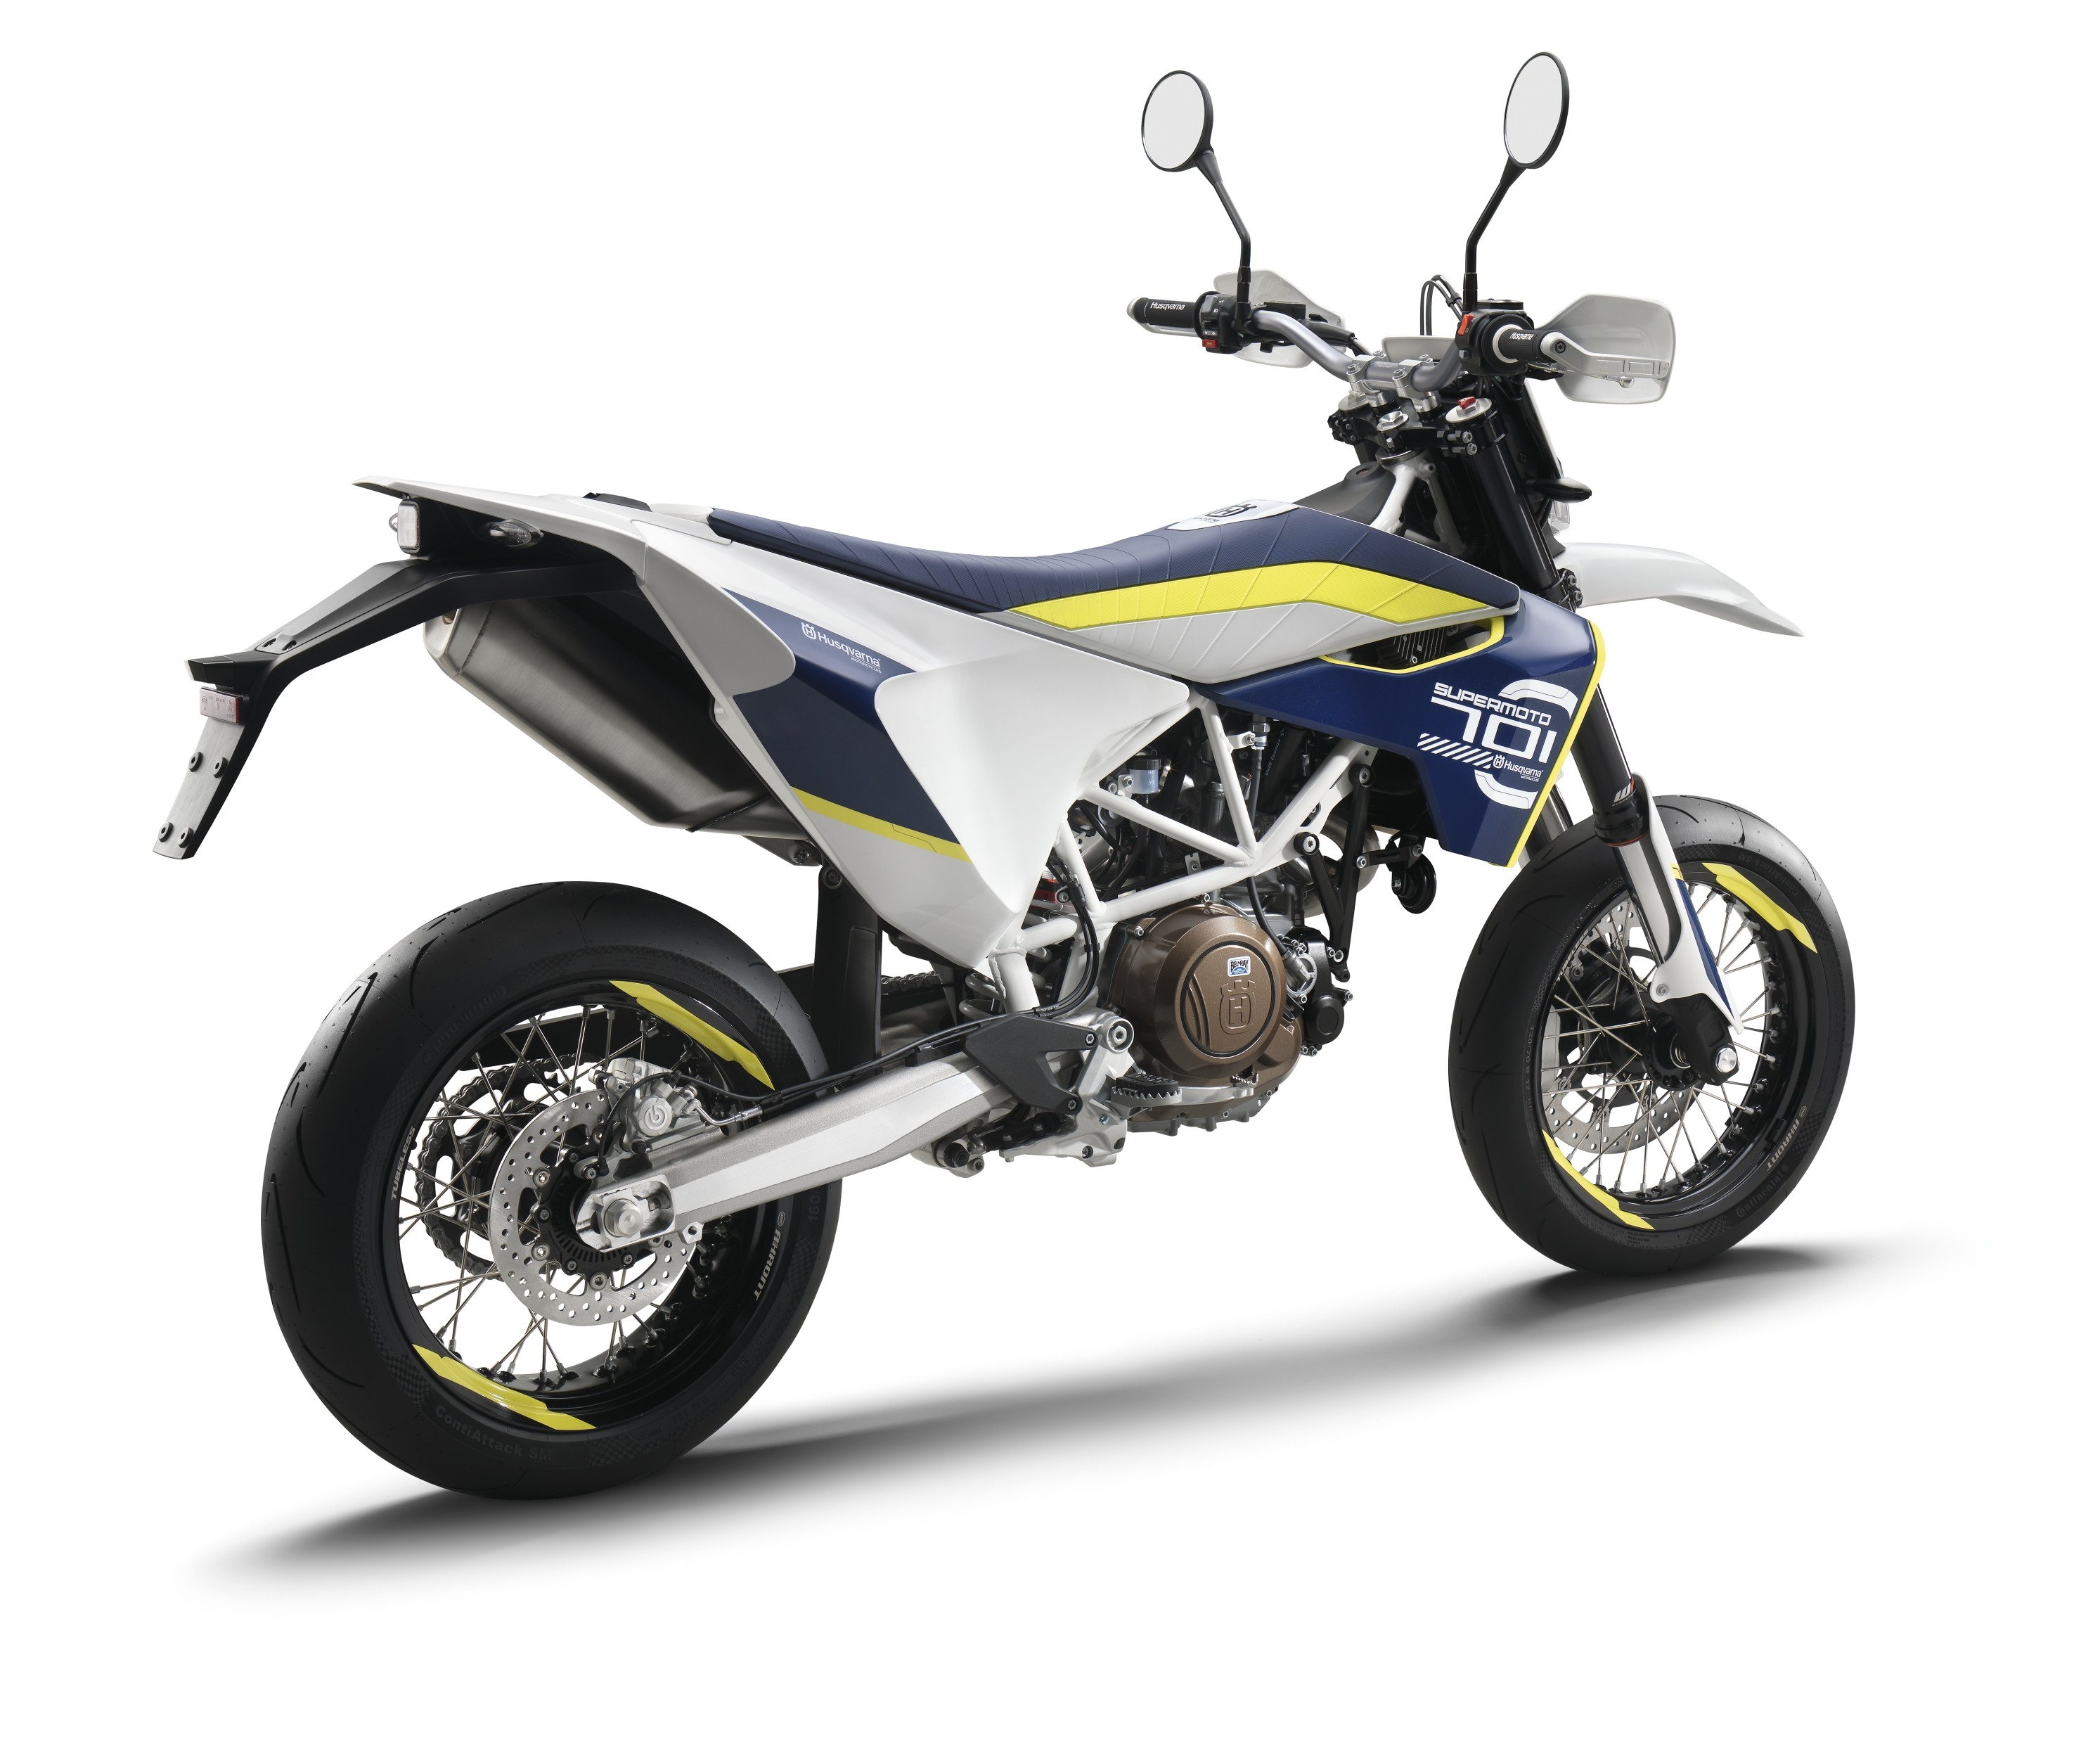 What Does Camaro Mean >> Husqvarna 701 Supermoto Availability Dates for Europe and ...